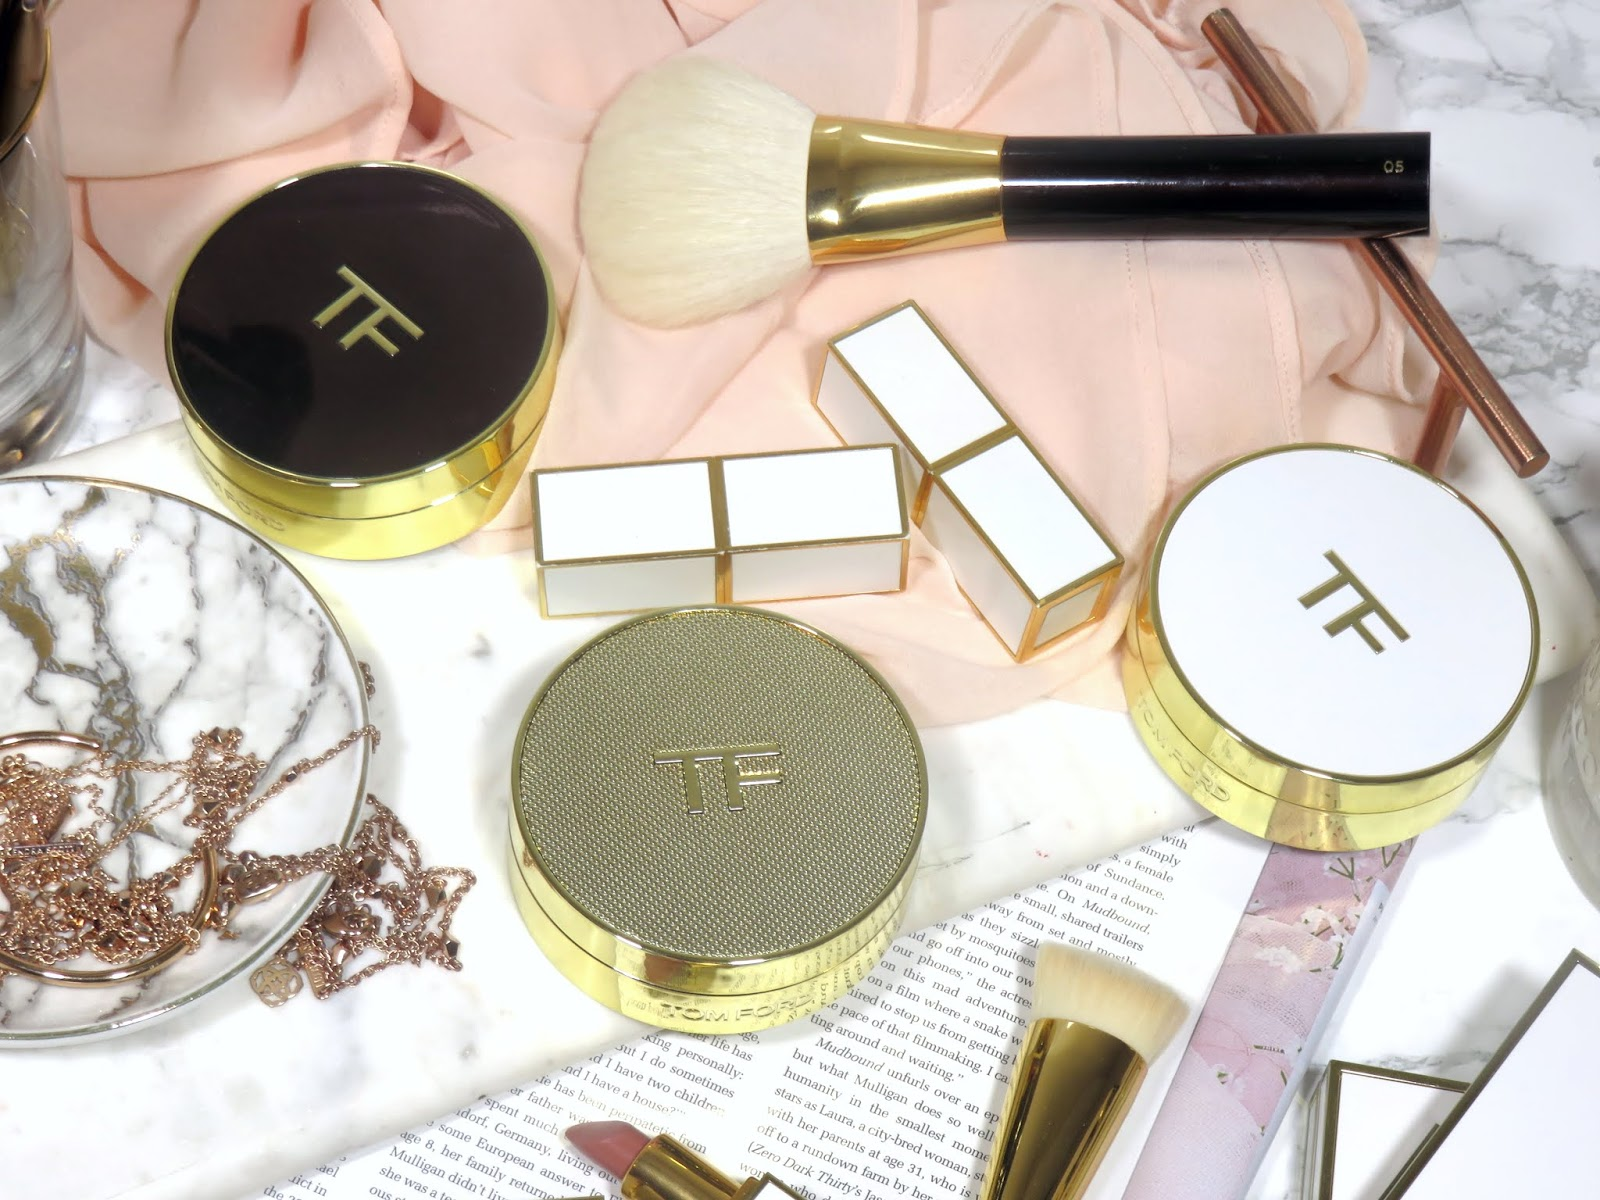 Tom Ford Shade and Illuminate Soft Radiance Cushion Compact Foundation